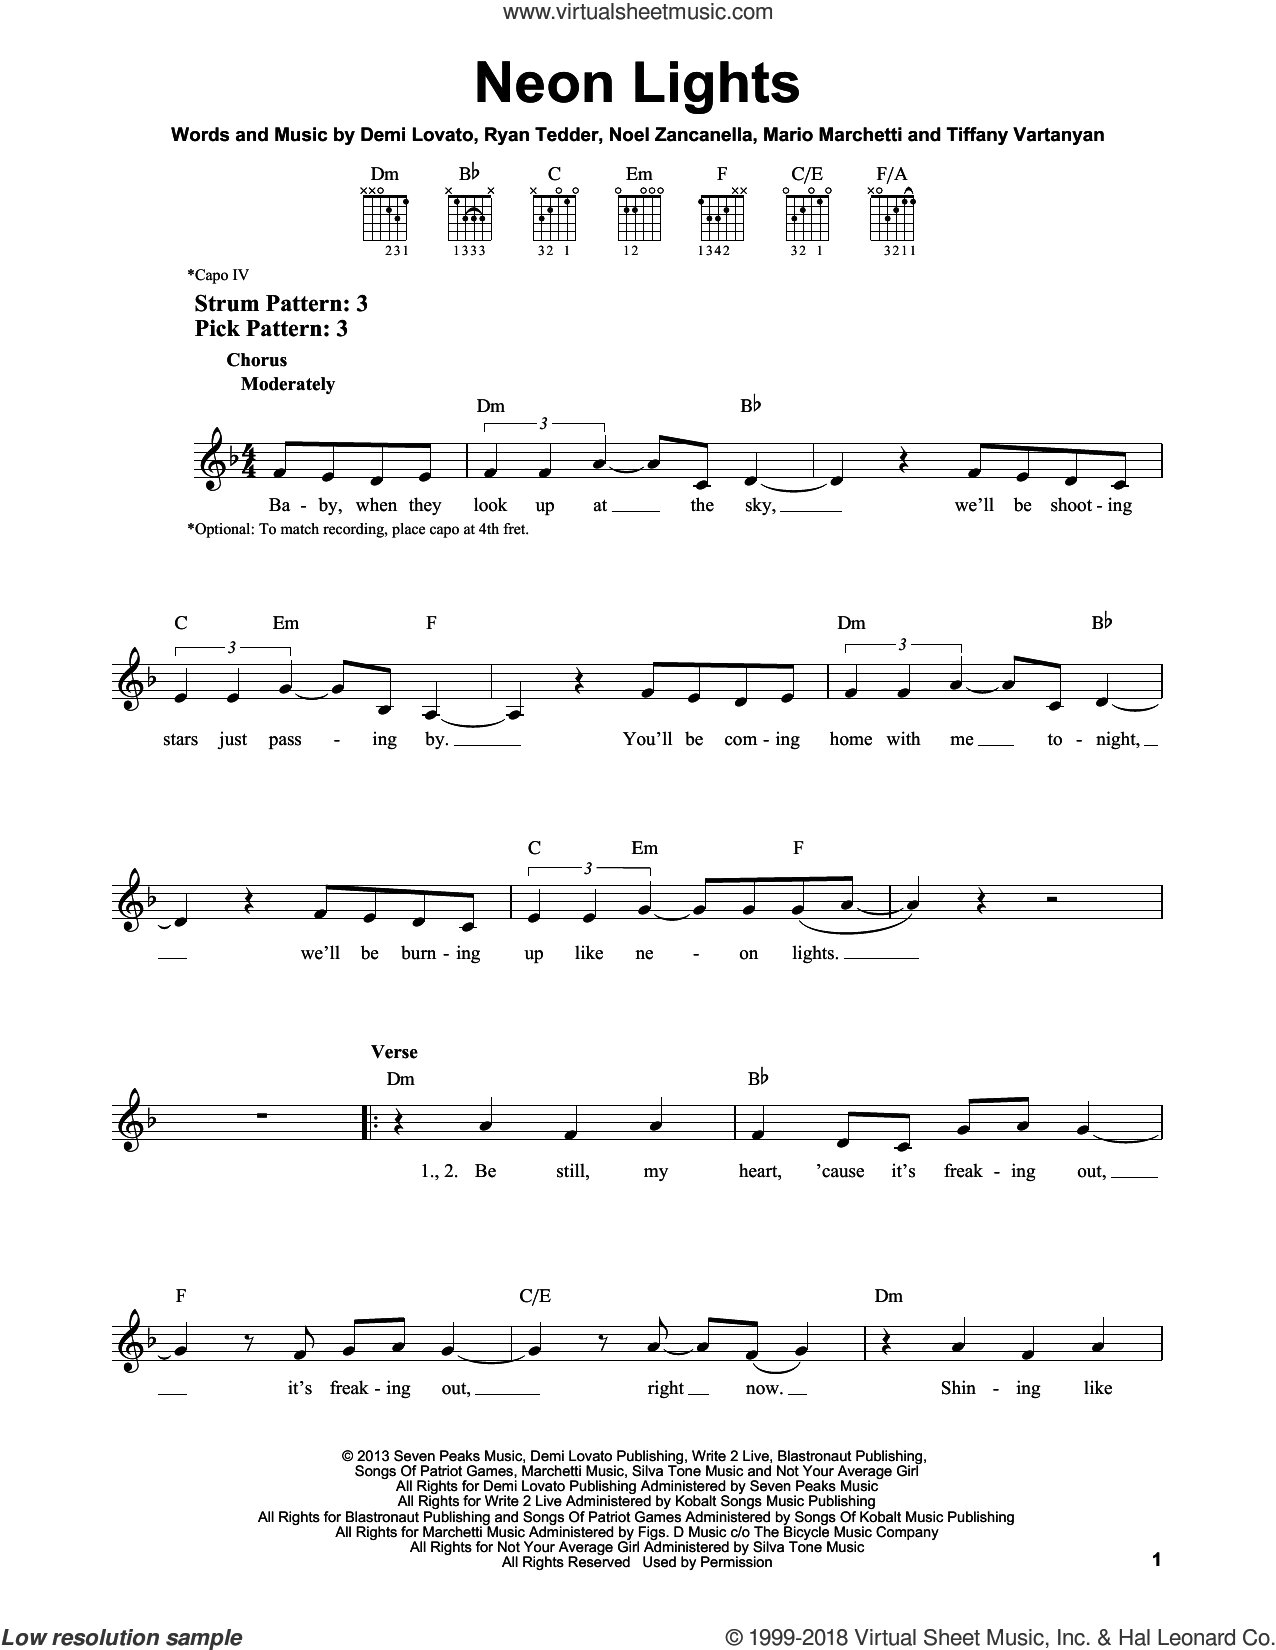 Neon Lights sheet music for guitar solo (chords) by Demi Lovato, Mario Marchetti, Noel Zancanella, Ryan Tedder and Tiffany Vartanyan, easy guitar (chords). Score Image Preview.